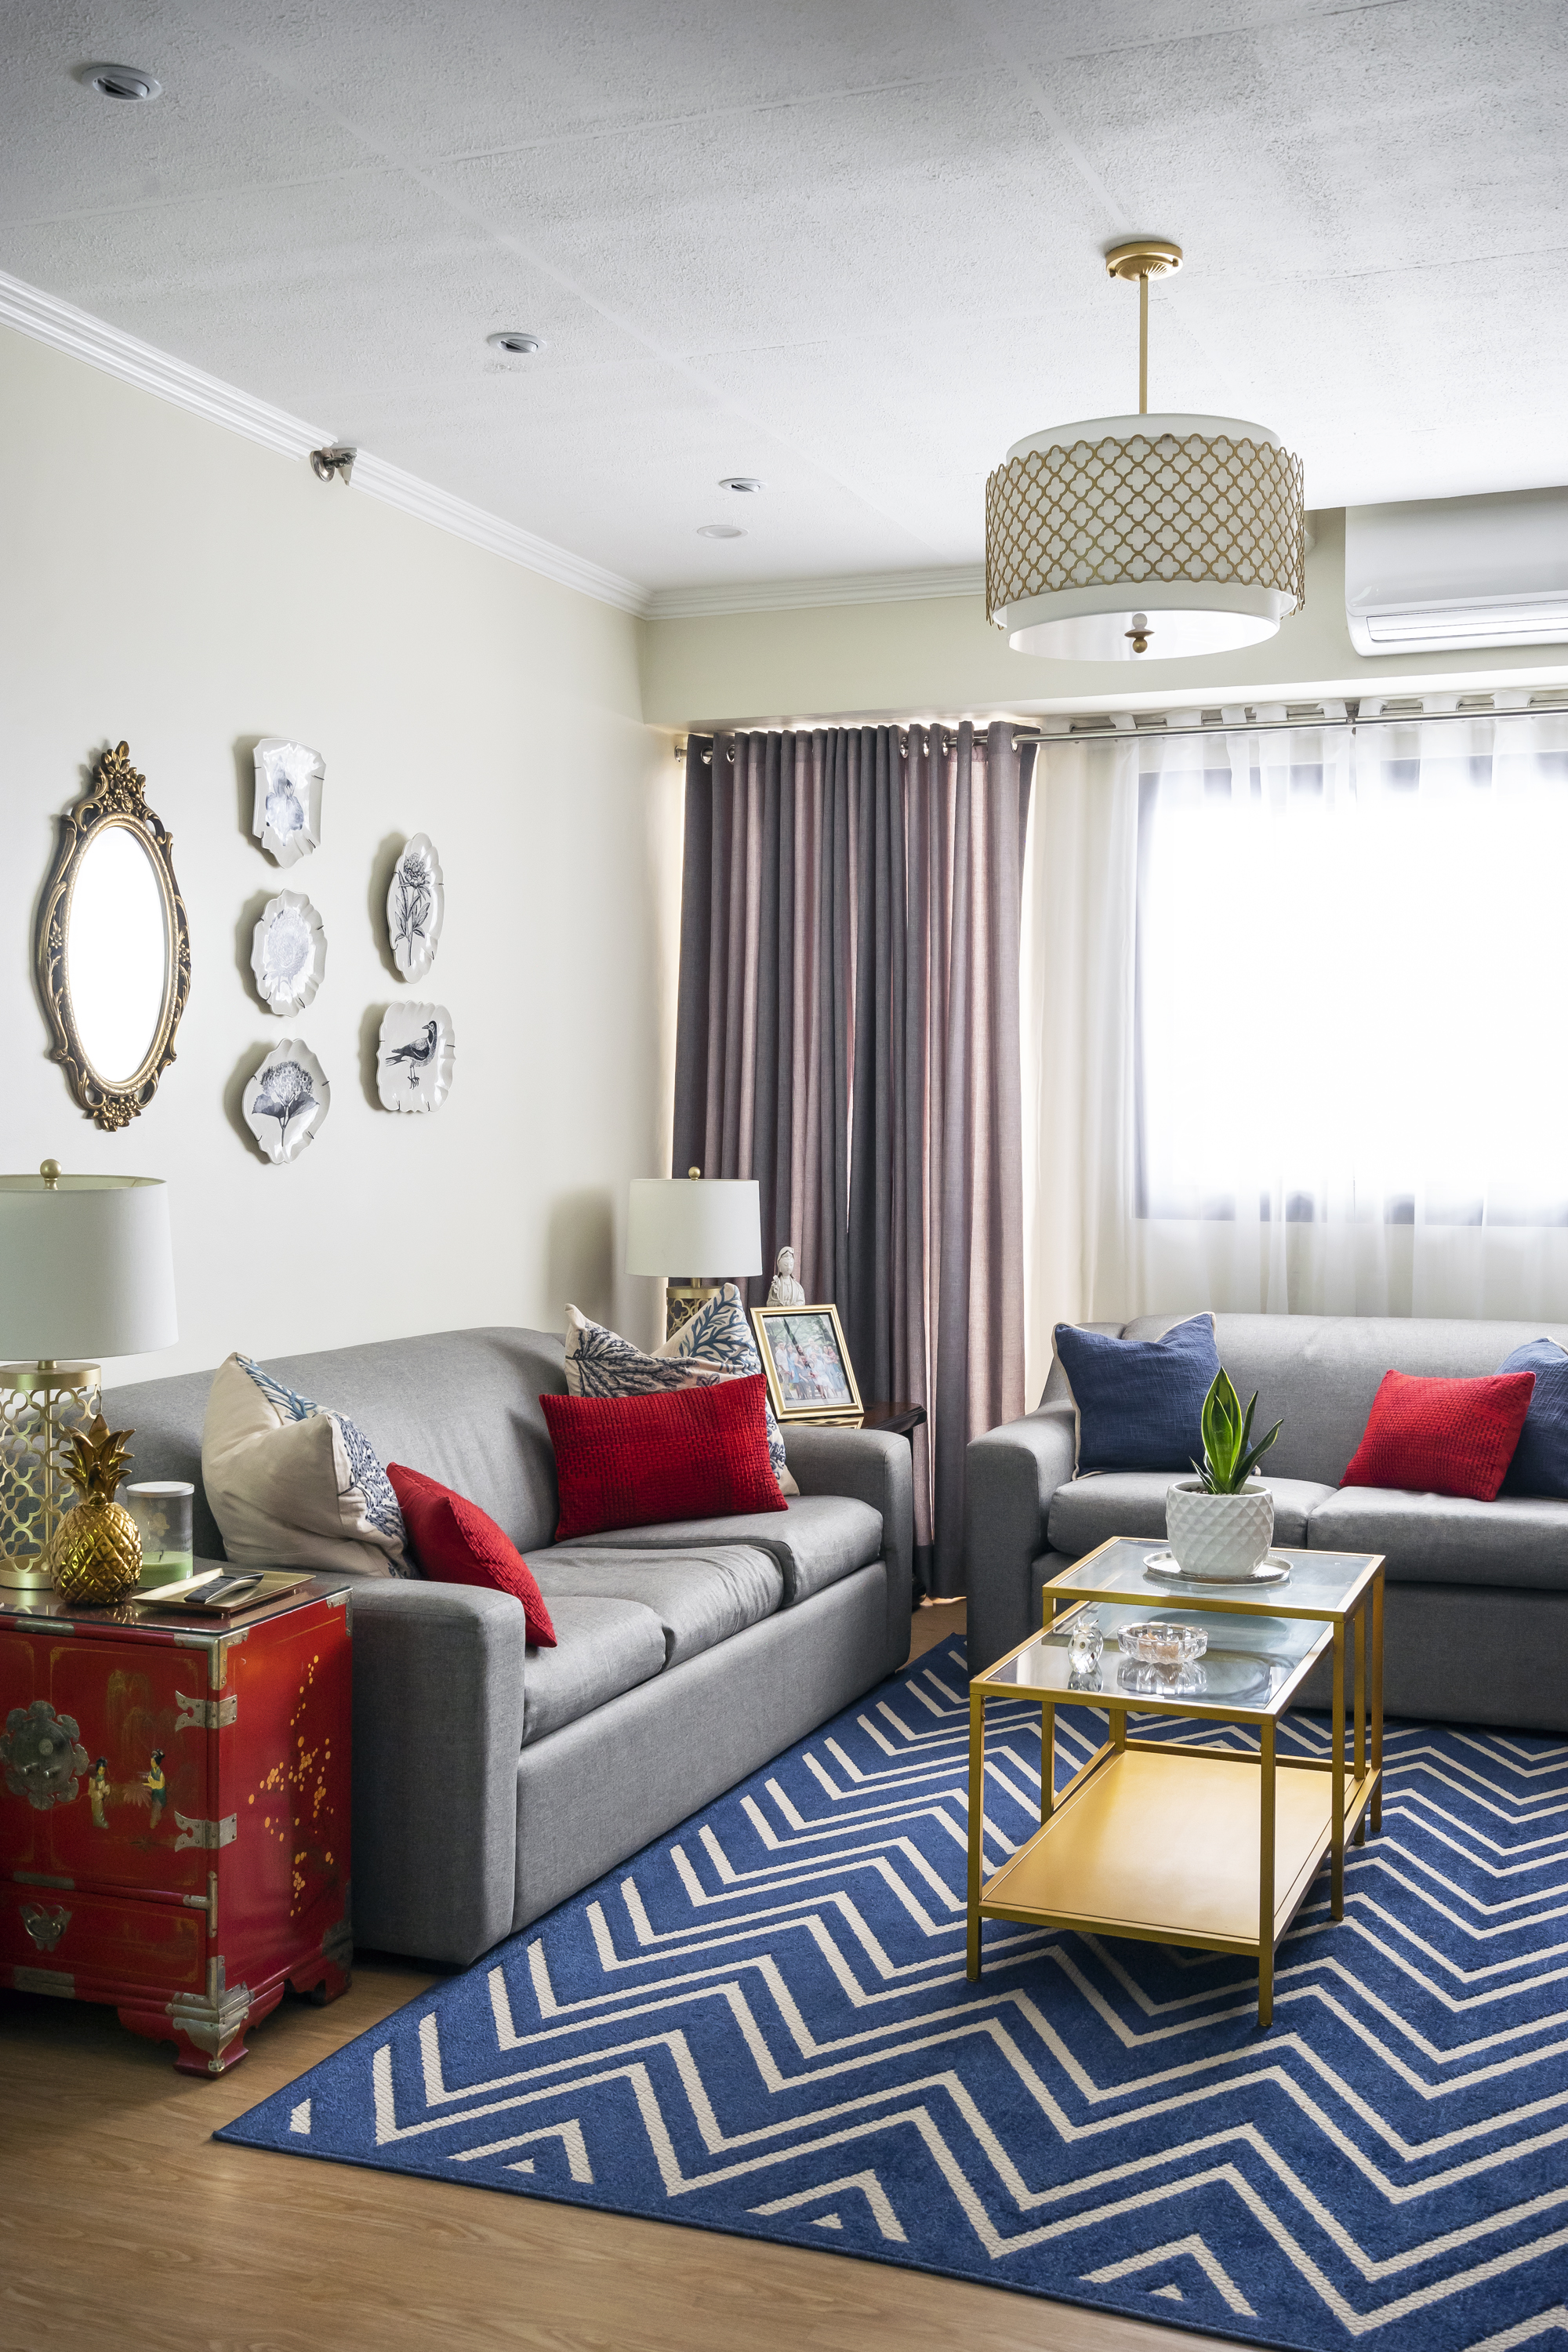 Blue and red Oriental-inspired living room